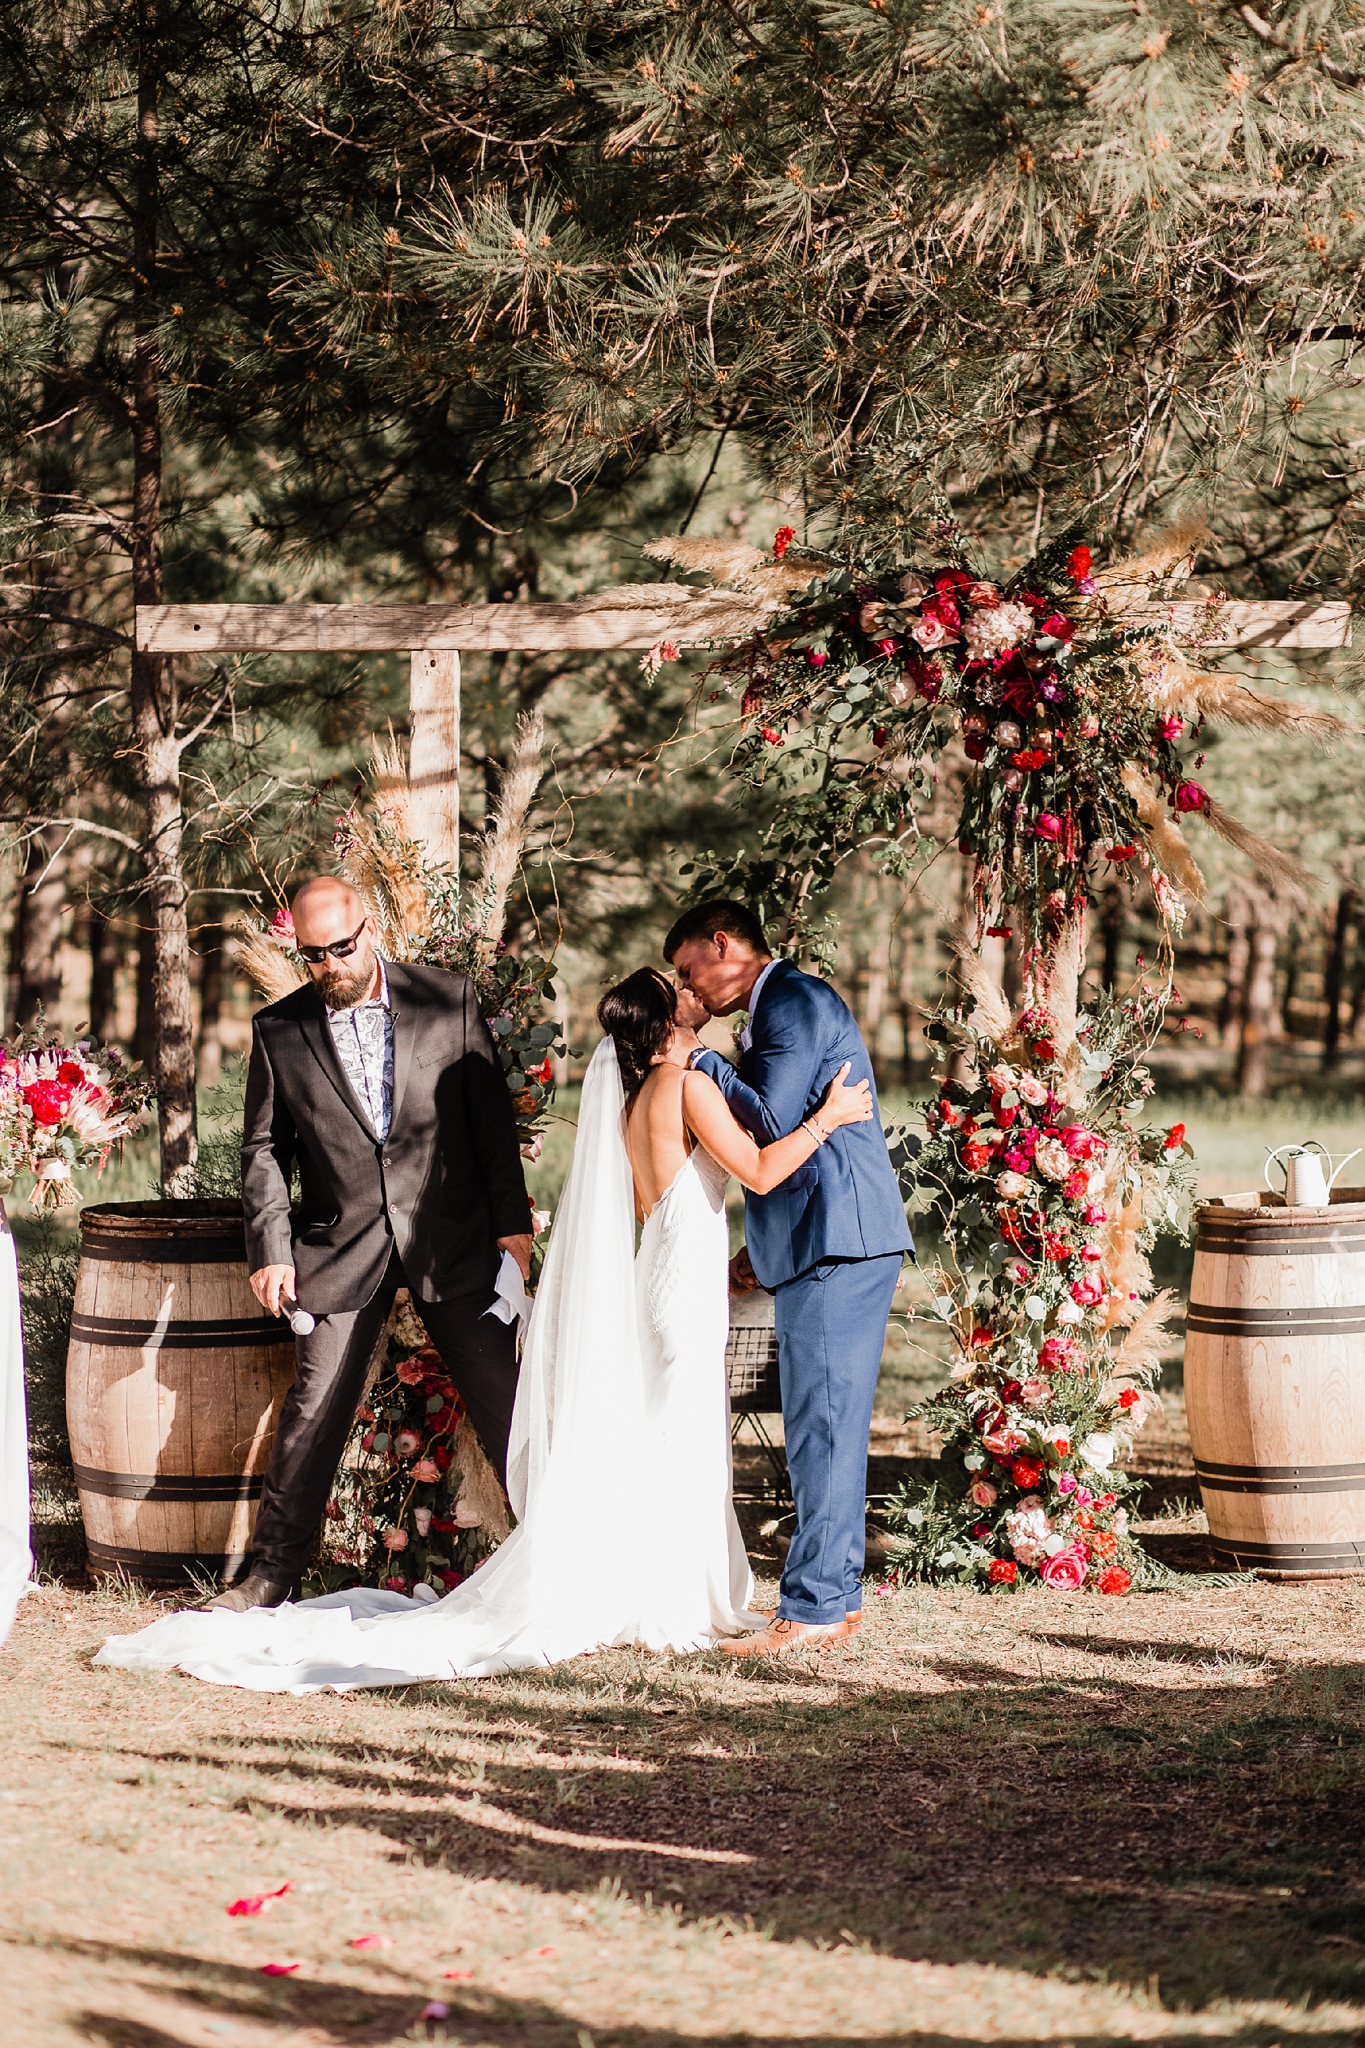 Alicia+lucia+photography+-+albuquerque+wedding+photographer+-+santa+fe+wedding+photography+-+new+mexico+wedding+photographer+-+new+mexico+wedding+-+new+mexico+wedding+-+barn+wedding+-+enchanted+vine+barn+wedding+-+ruidoso+wedding_0107.jpg